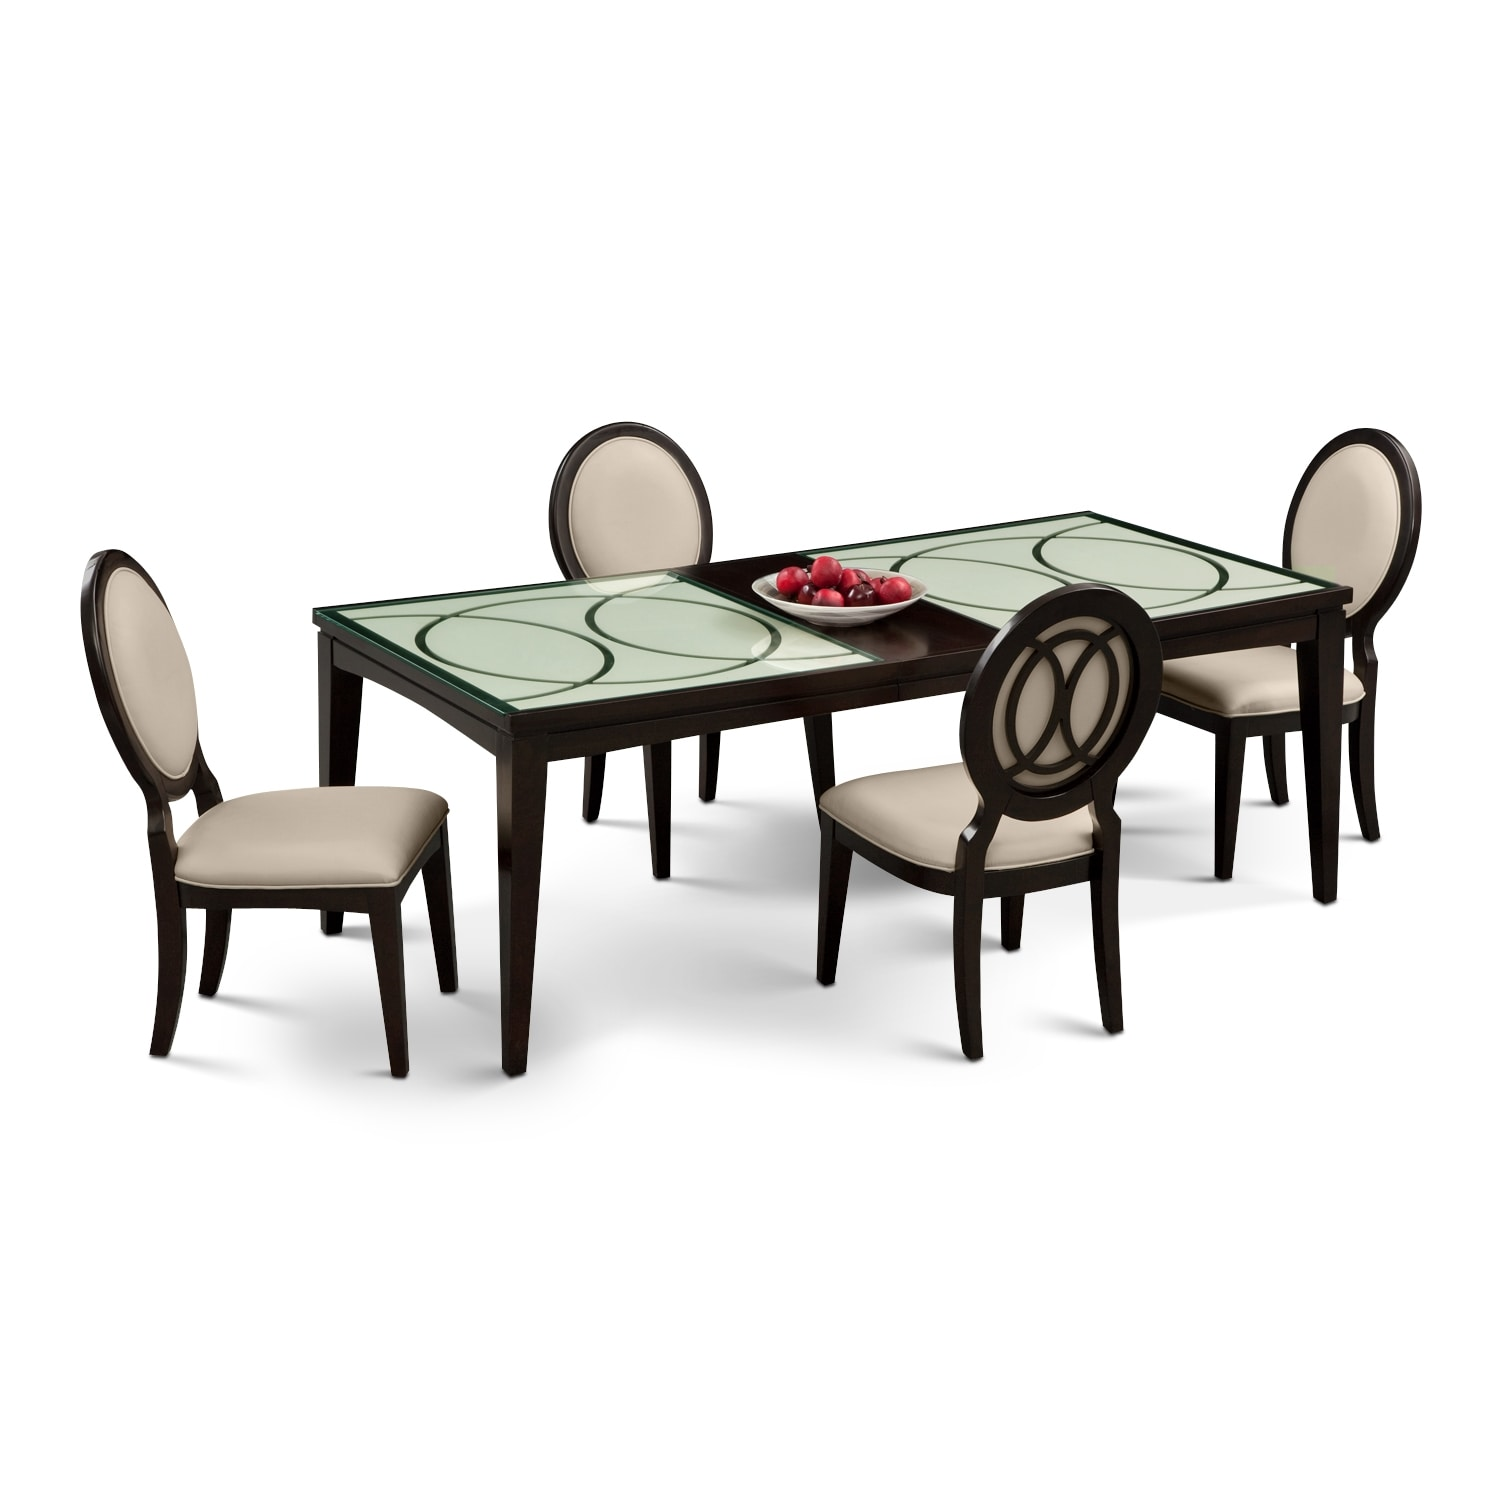 b605bae7e7 Cosmo Table and 4 Chairs - Merlot | Value City Furniture and Mattresses